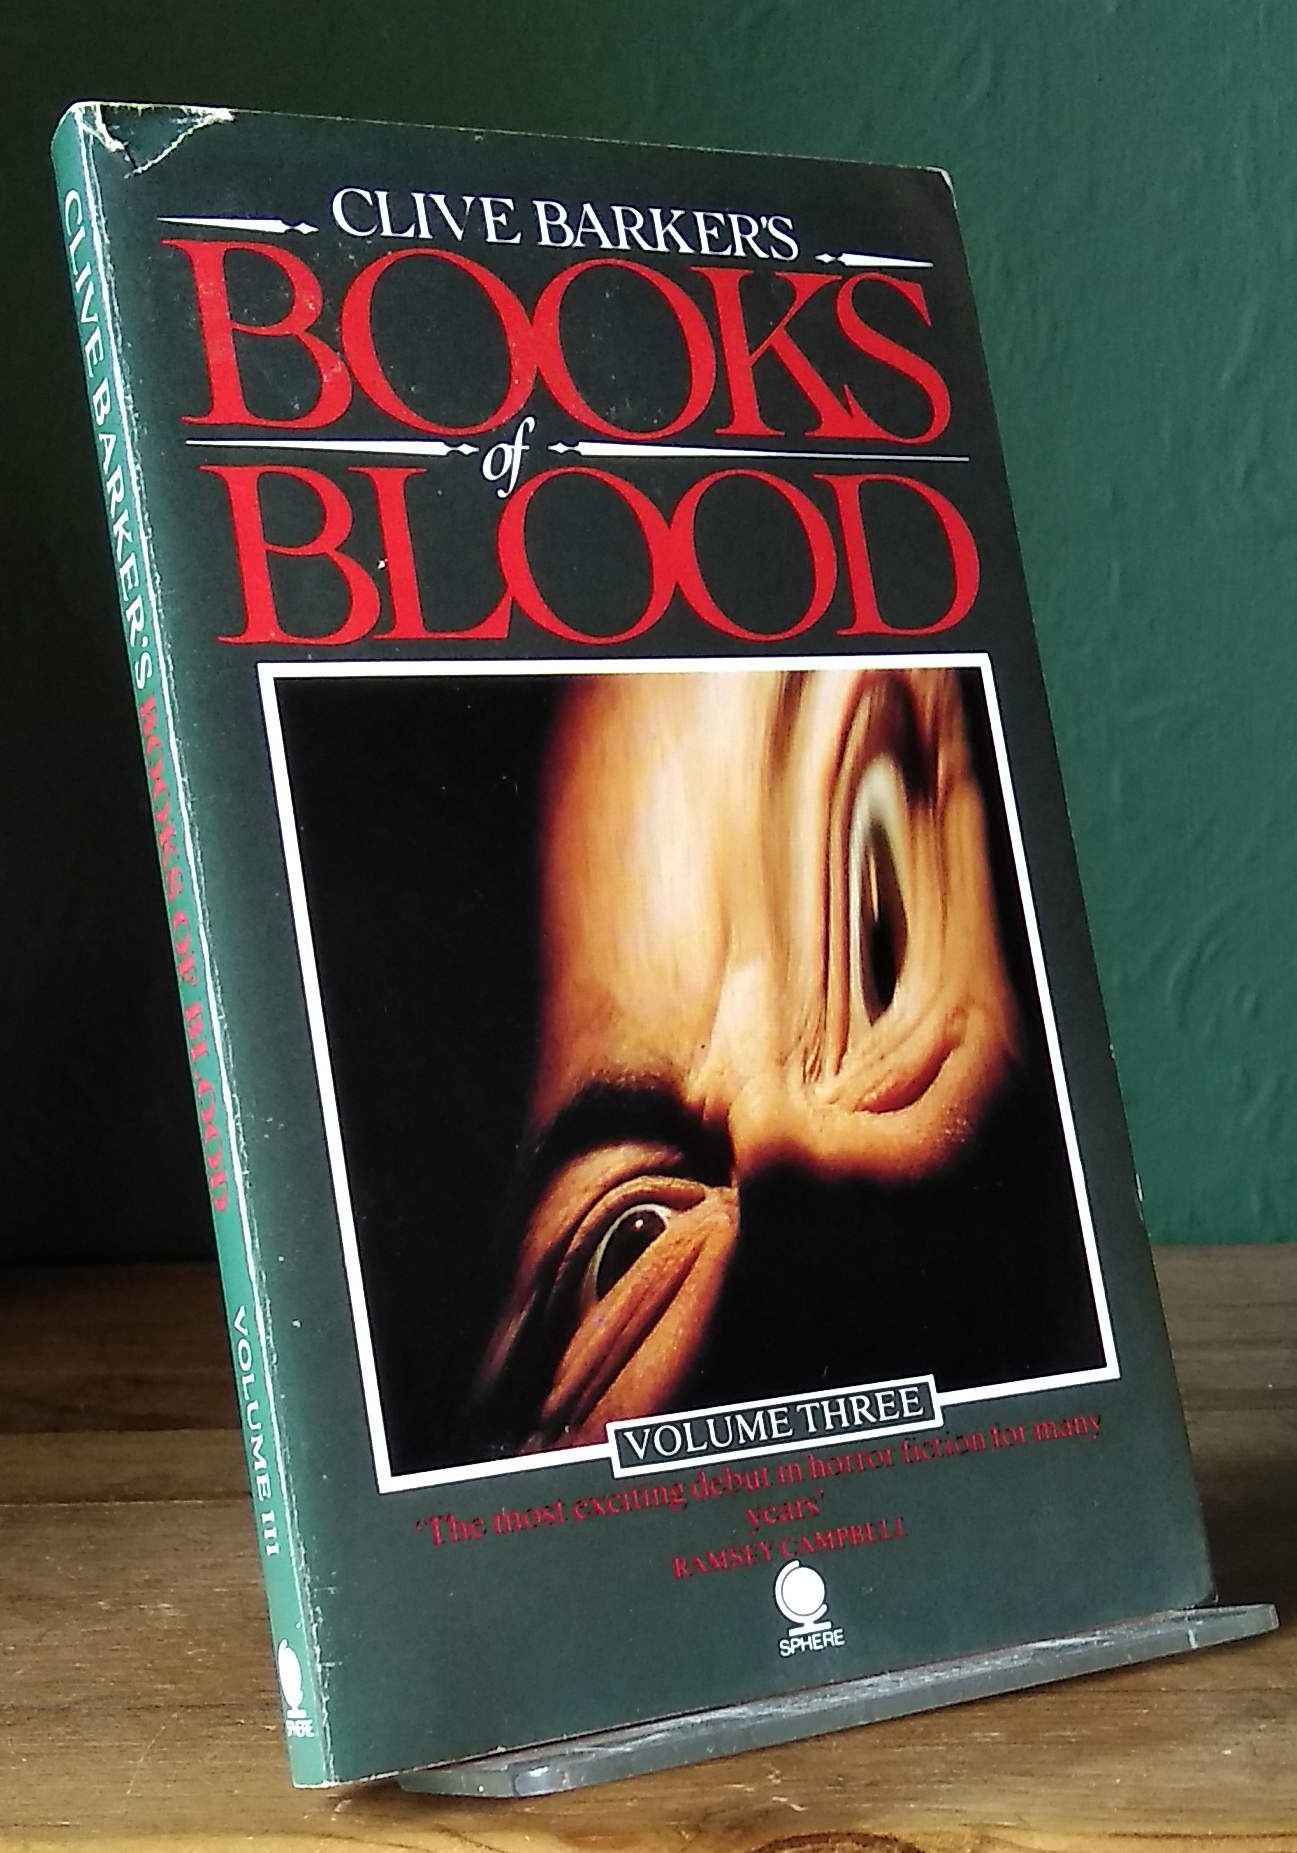 The Books Of Blood Vols 1,2 & 3 UK PBO's